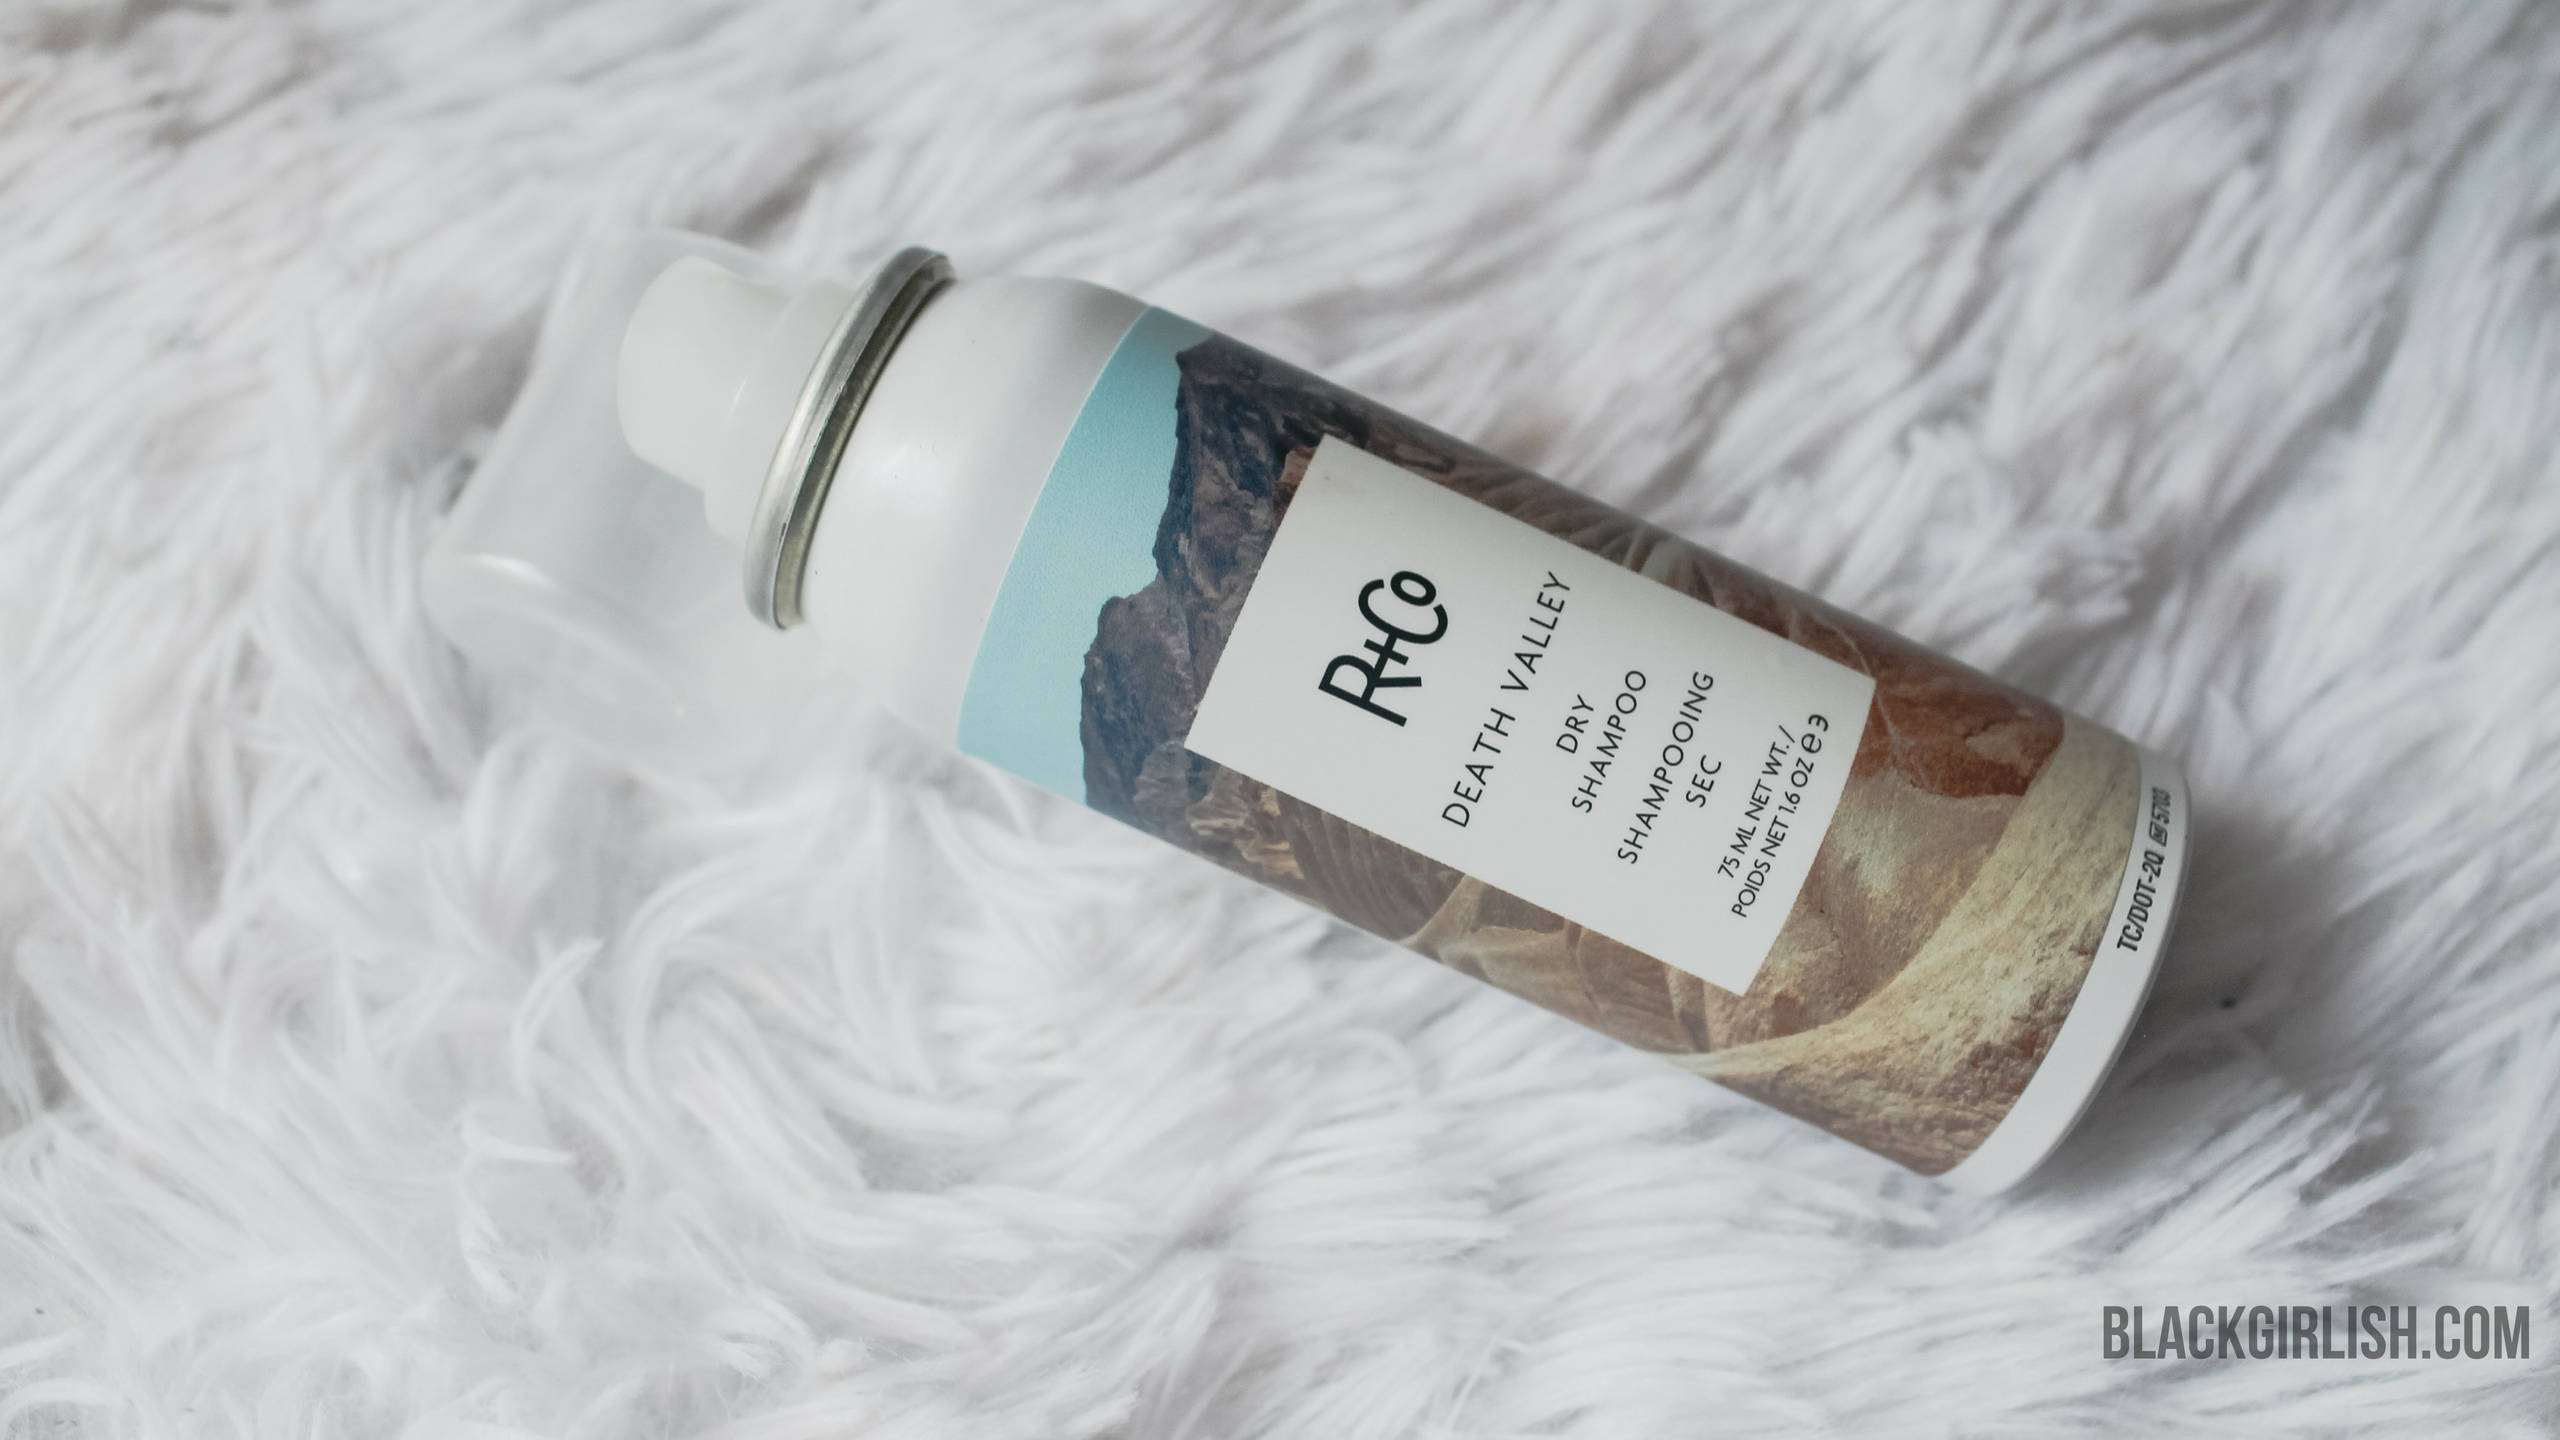 R + Co Death Valley Dry Shampoo - BoxyLuxe - blackgirlish.com